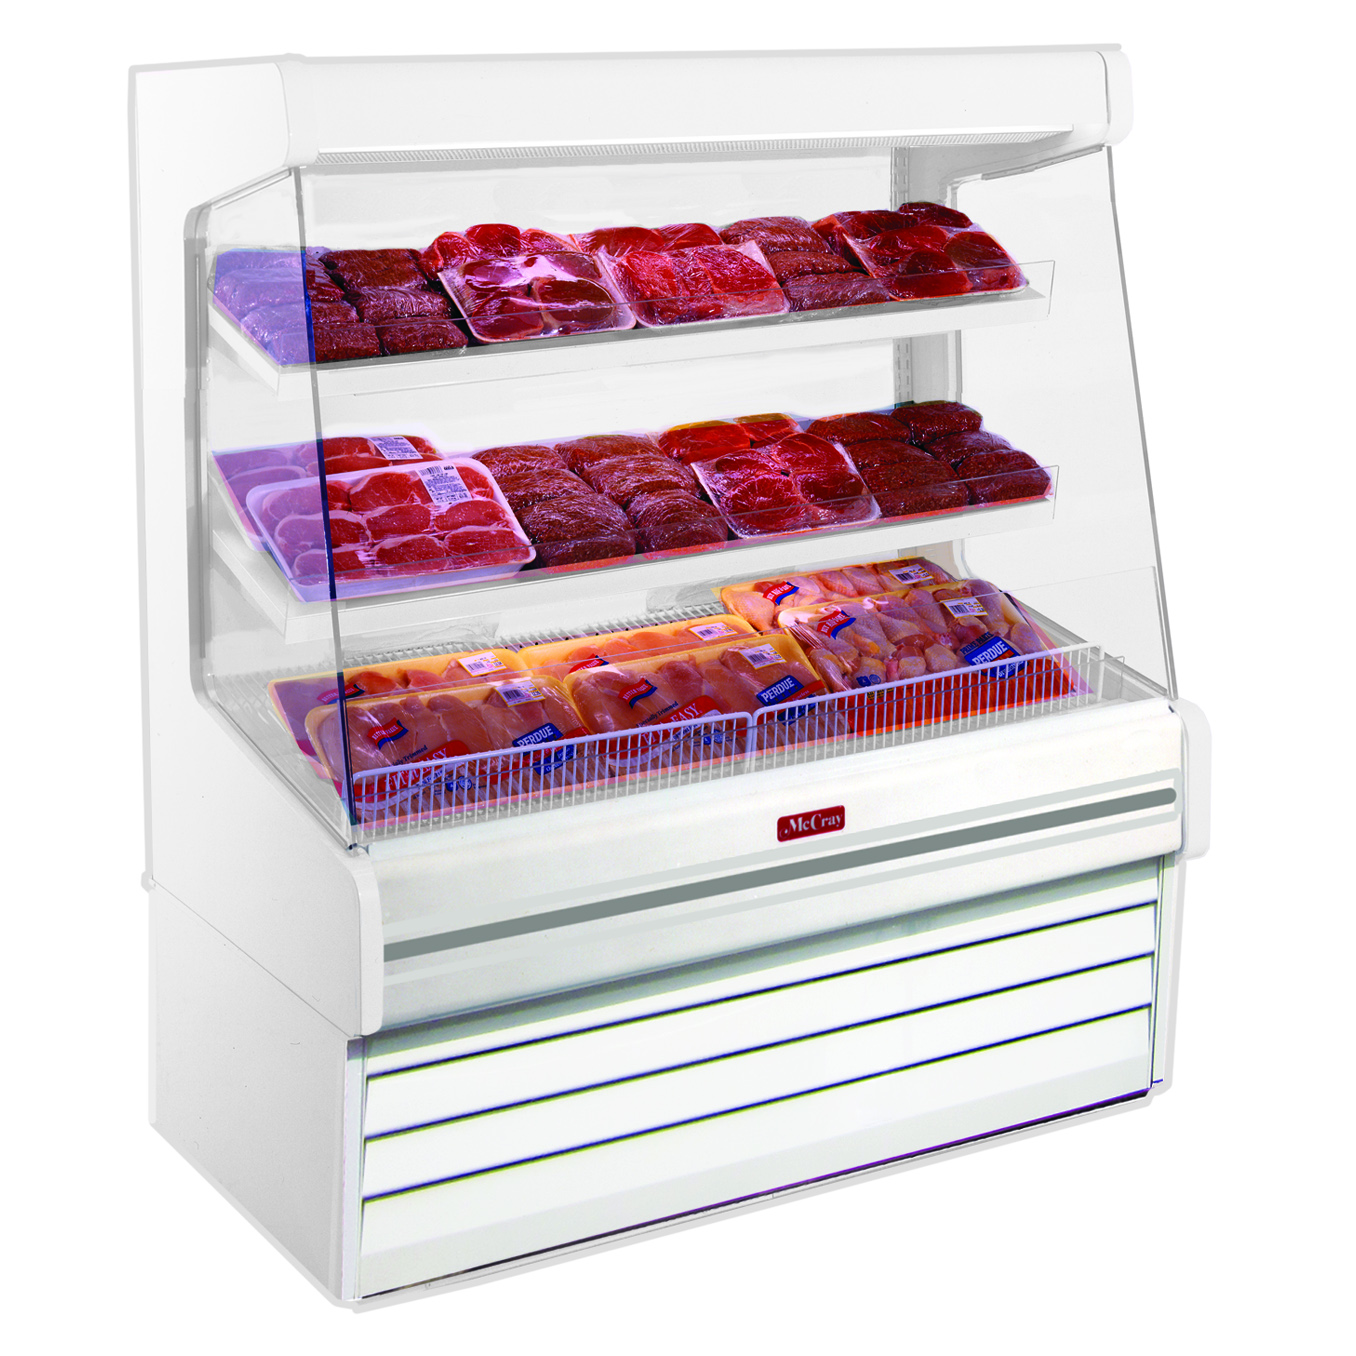 Howard-McCray R-OP30E-6L-LED display case, produce